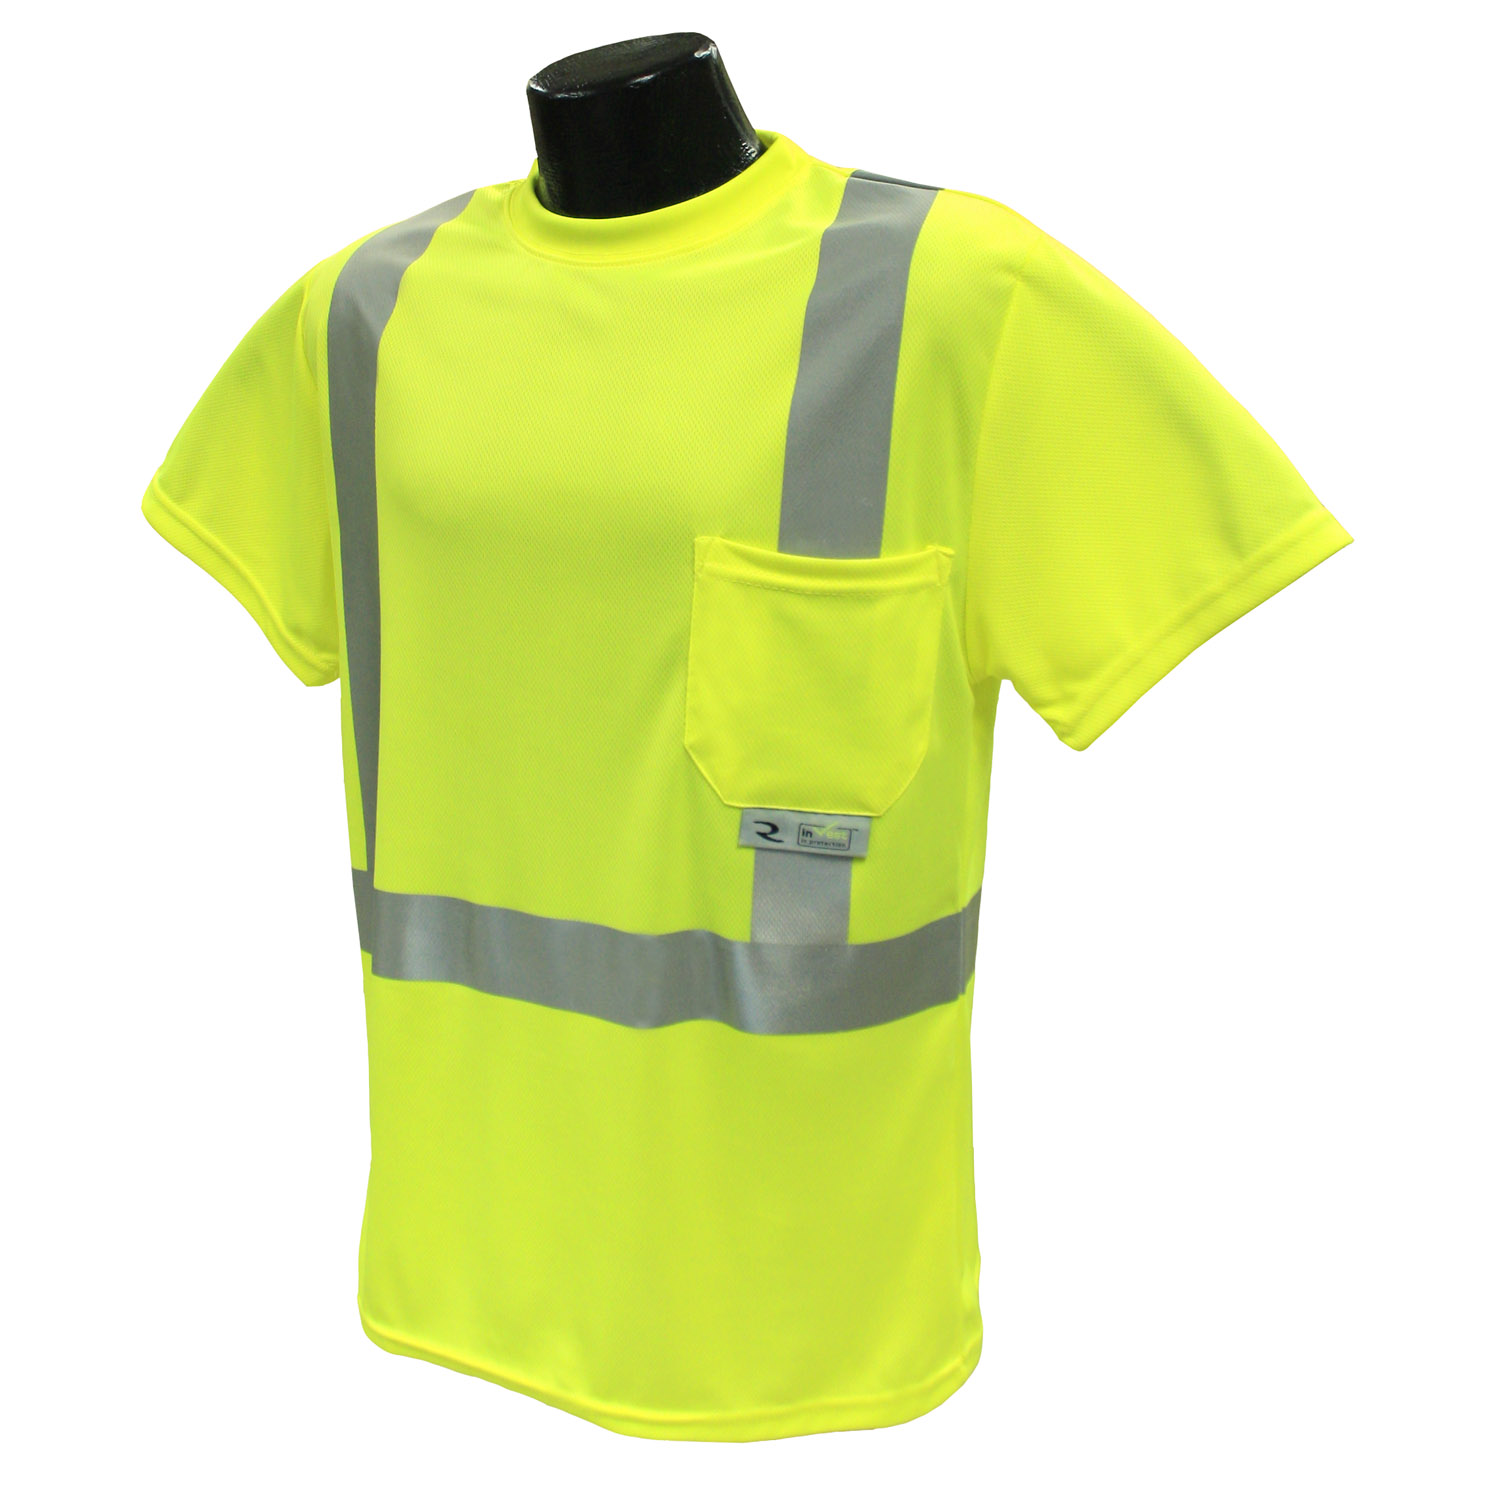 Radians ST11 Class 2 High Visibility Safety T-Shirt with Max-Dri™